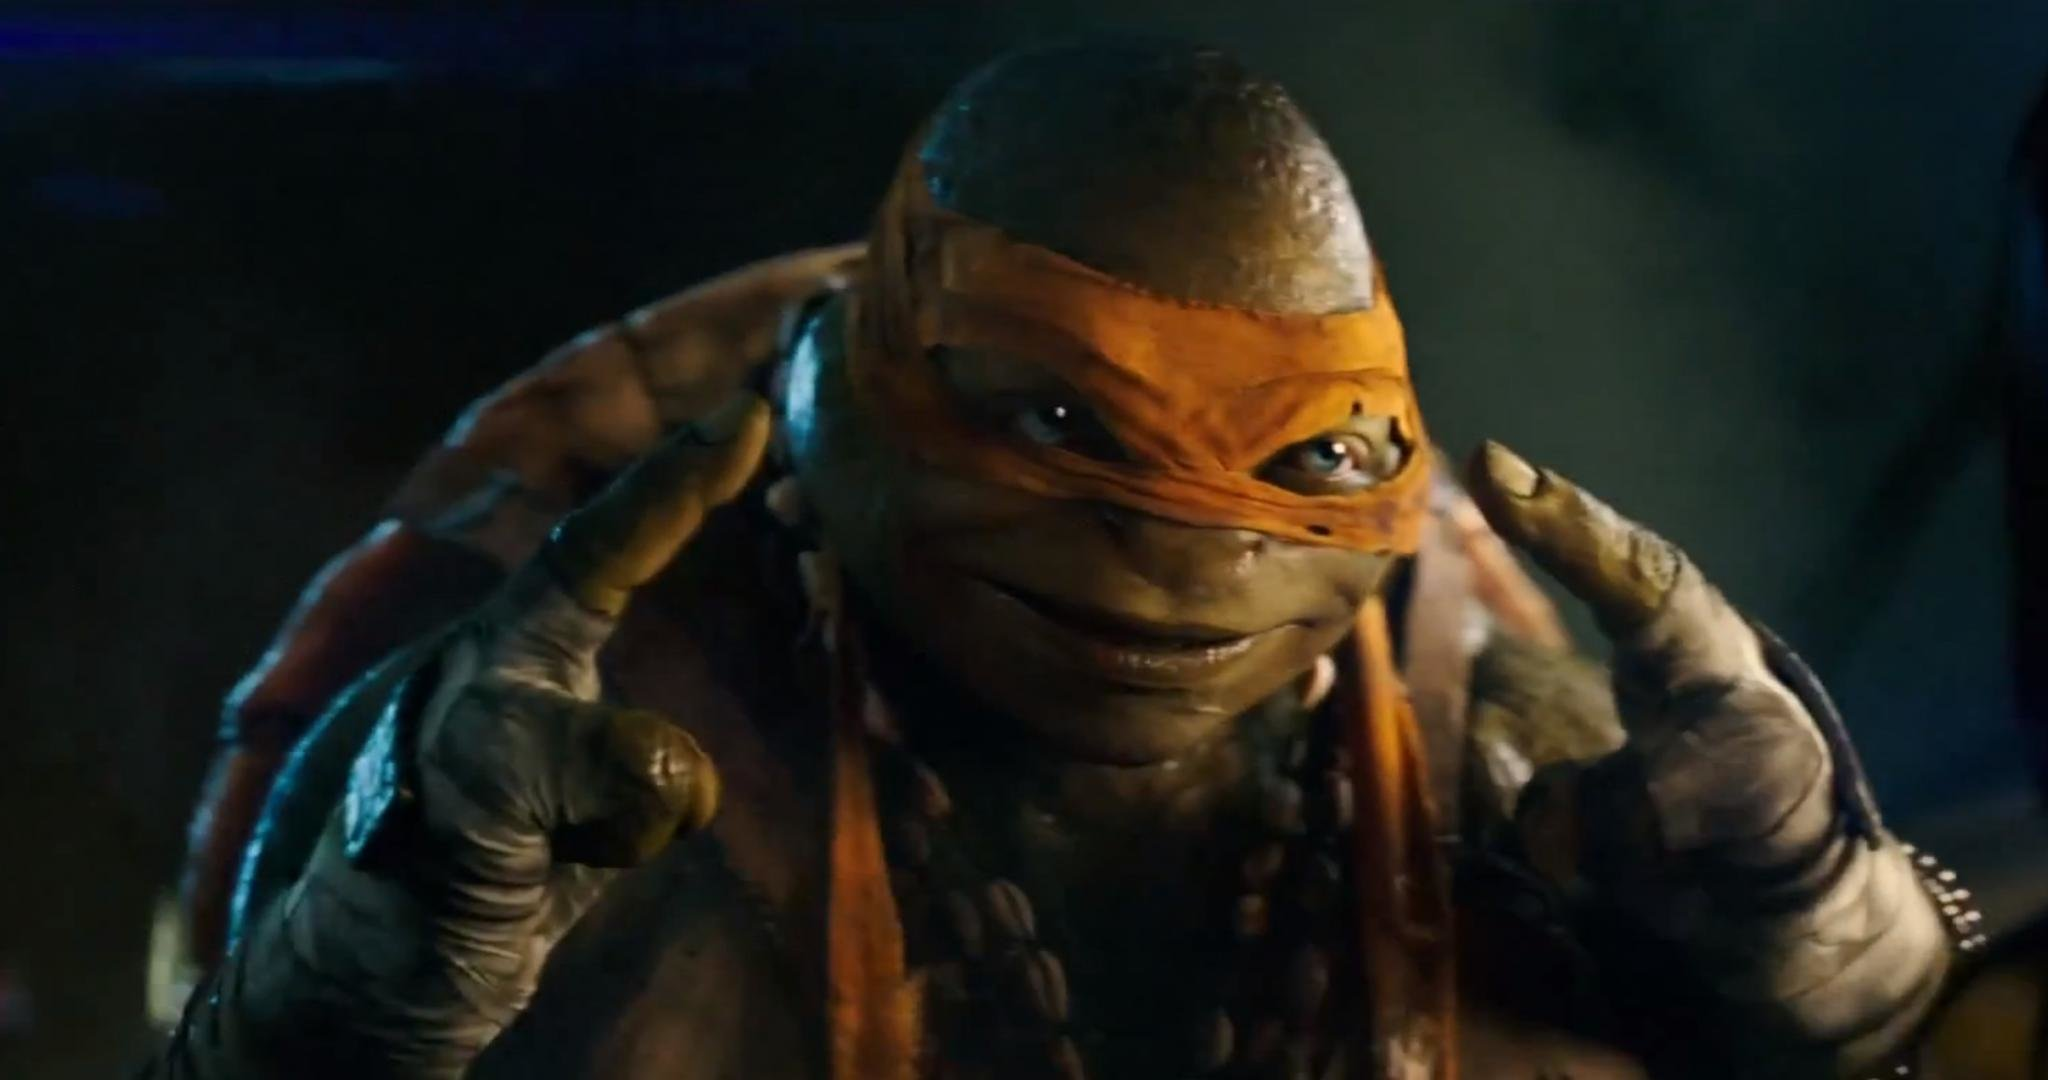 Free download Teenage Mutant Ninja Turtles (2014) TMNT movie background ID:234190 hd 2048x1080 for computer